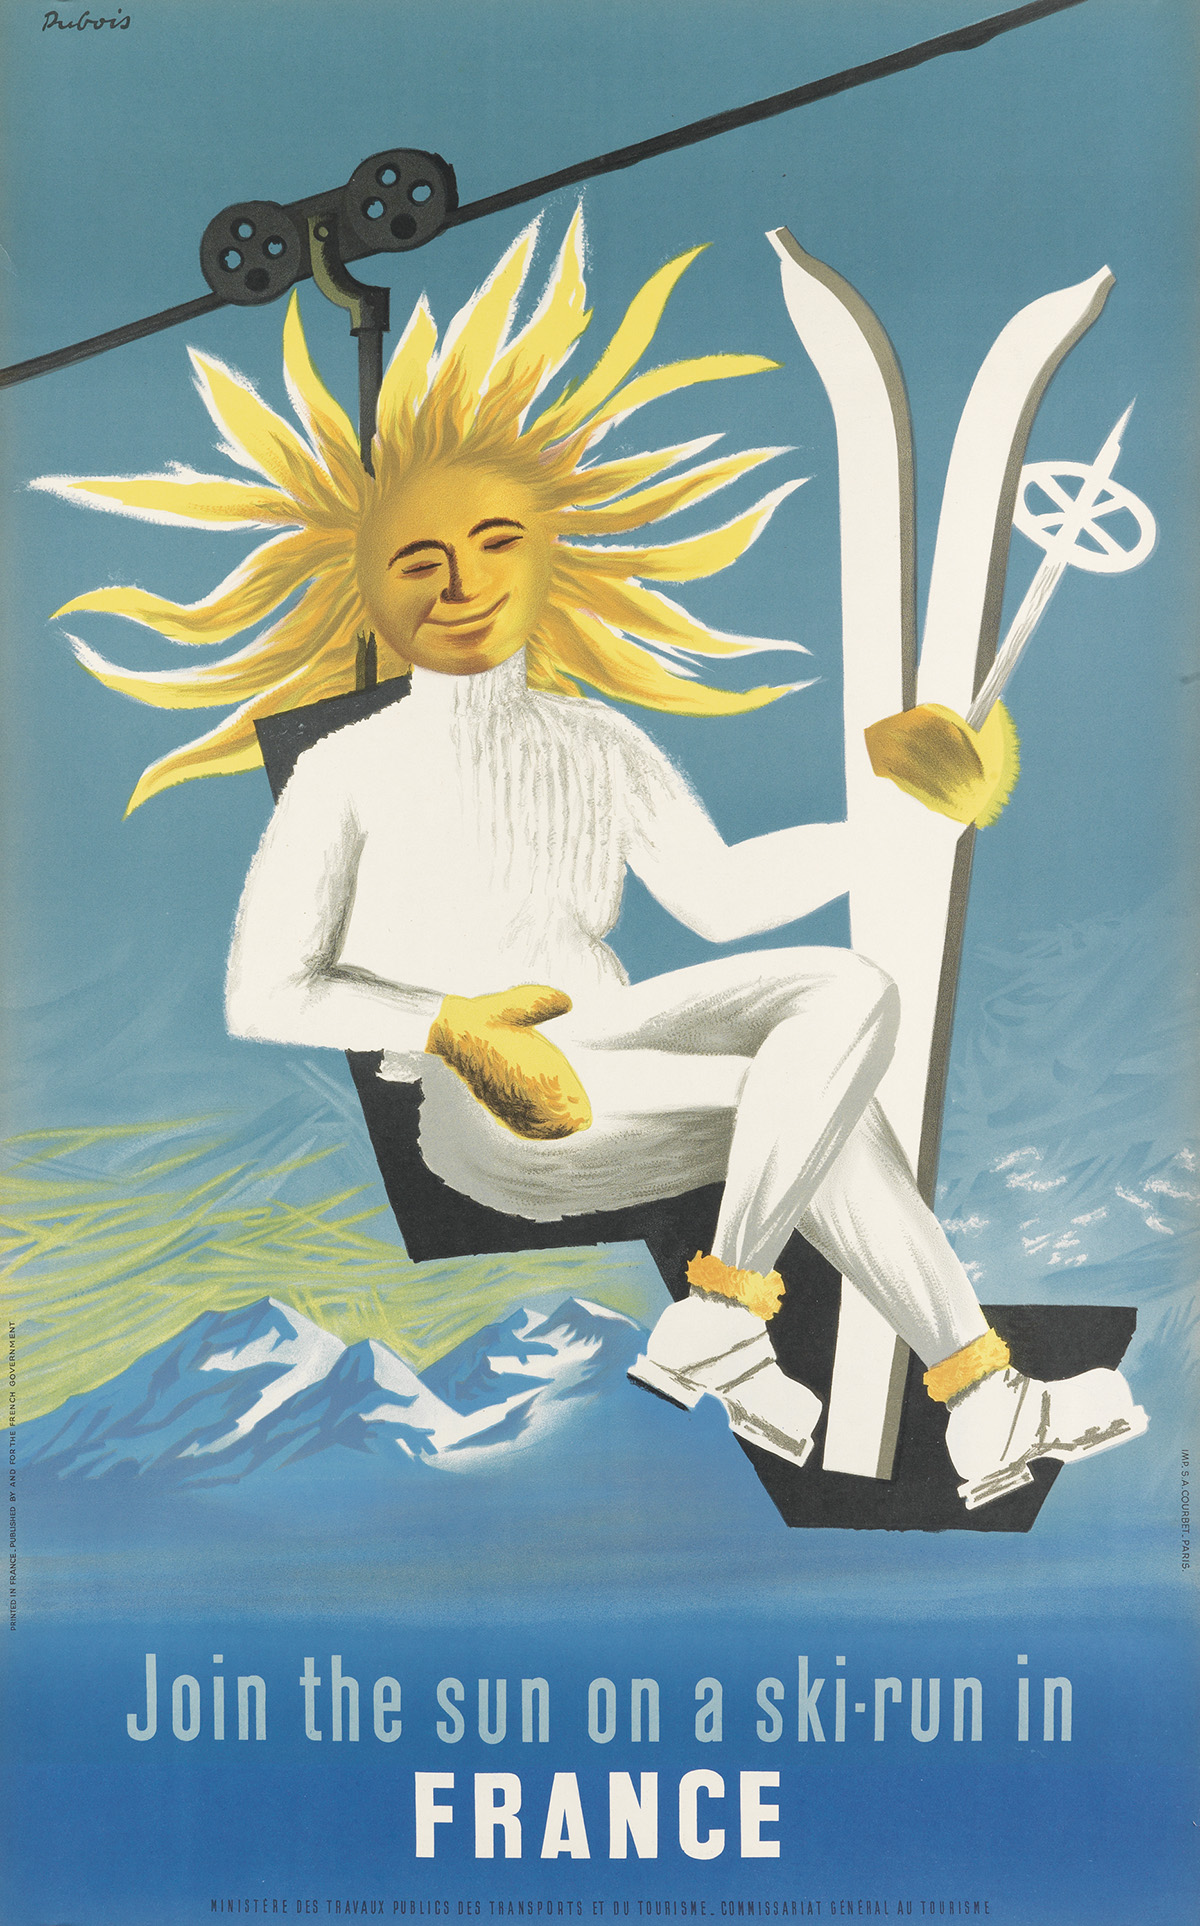 JACQUES-DUBOIS-(DATES-UNKNOWN)-JOIN-THE-SUN-ON-A-SKI---RUN-I